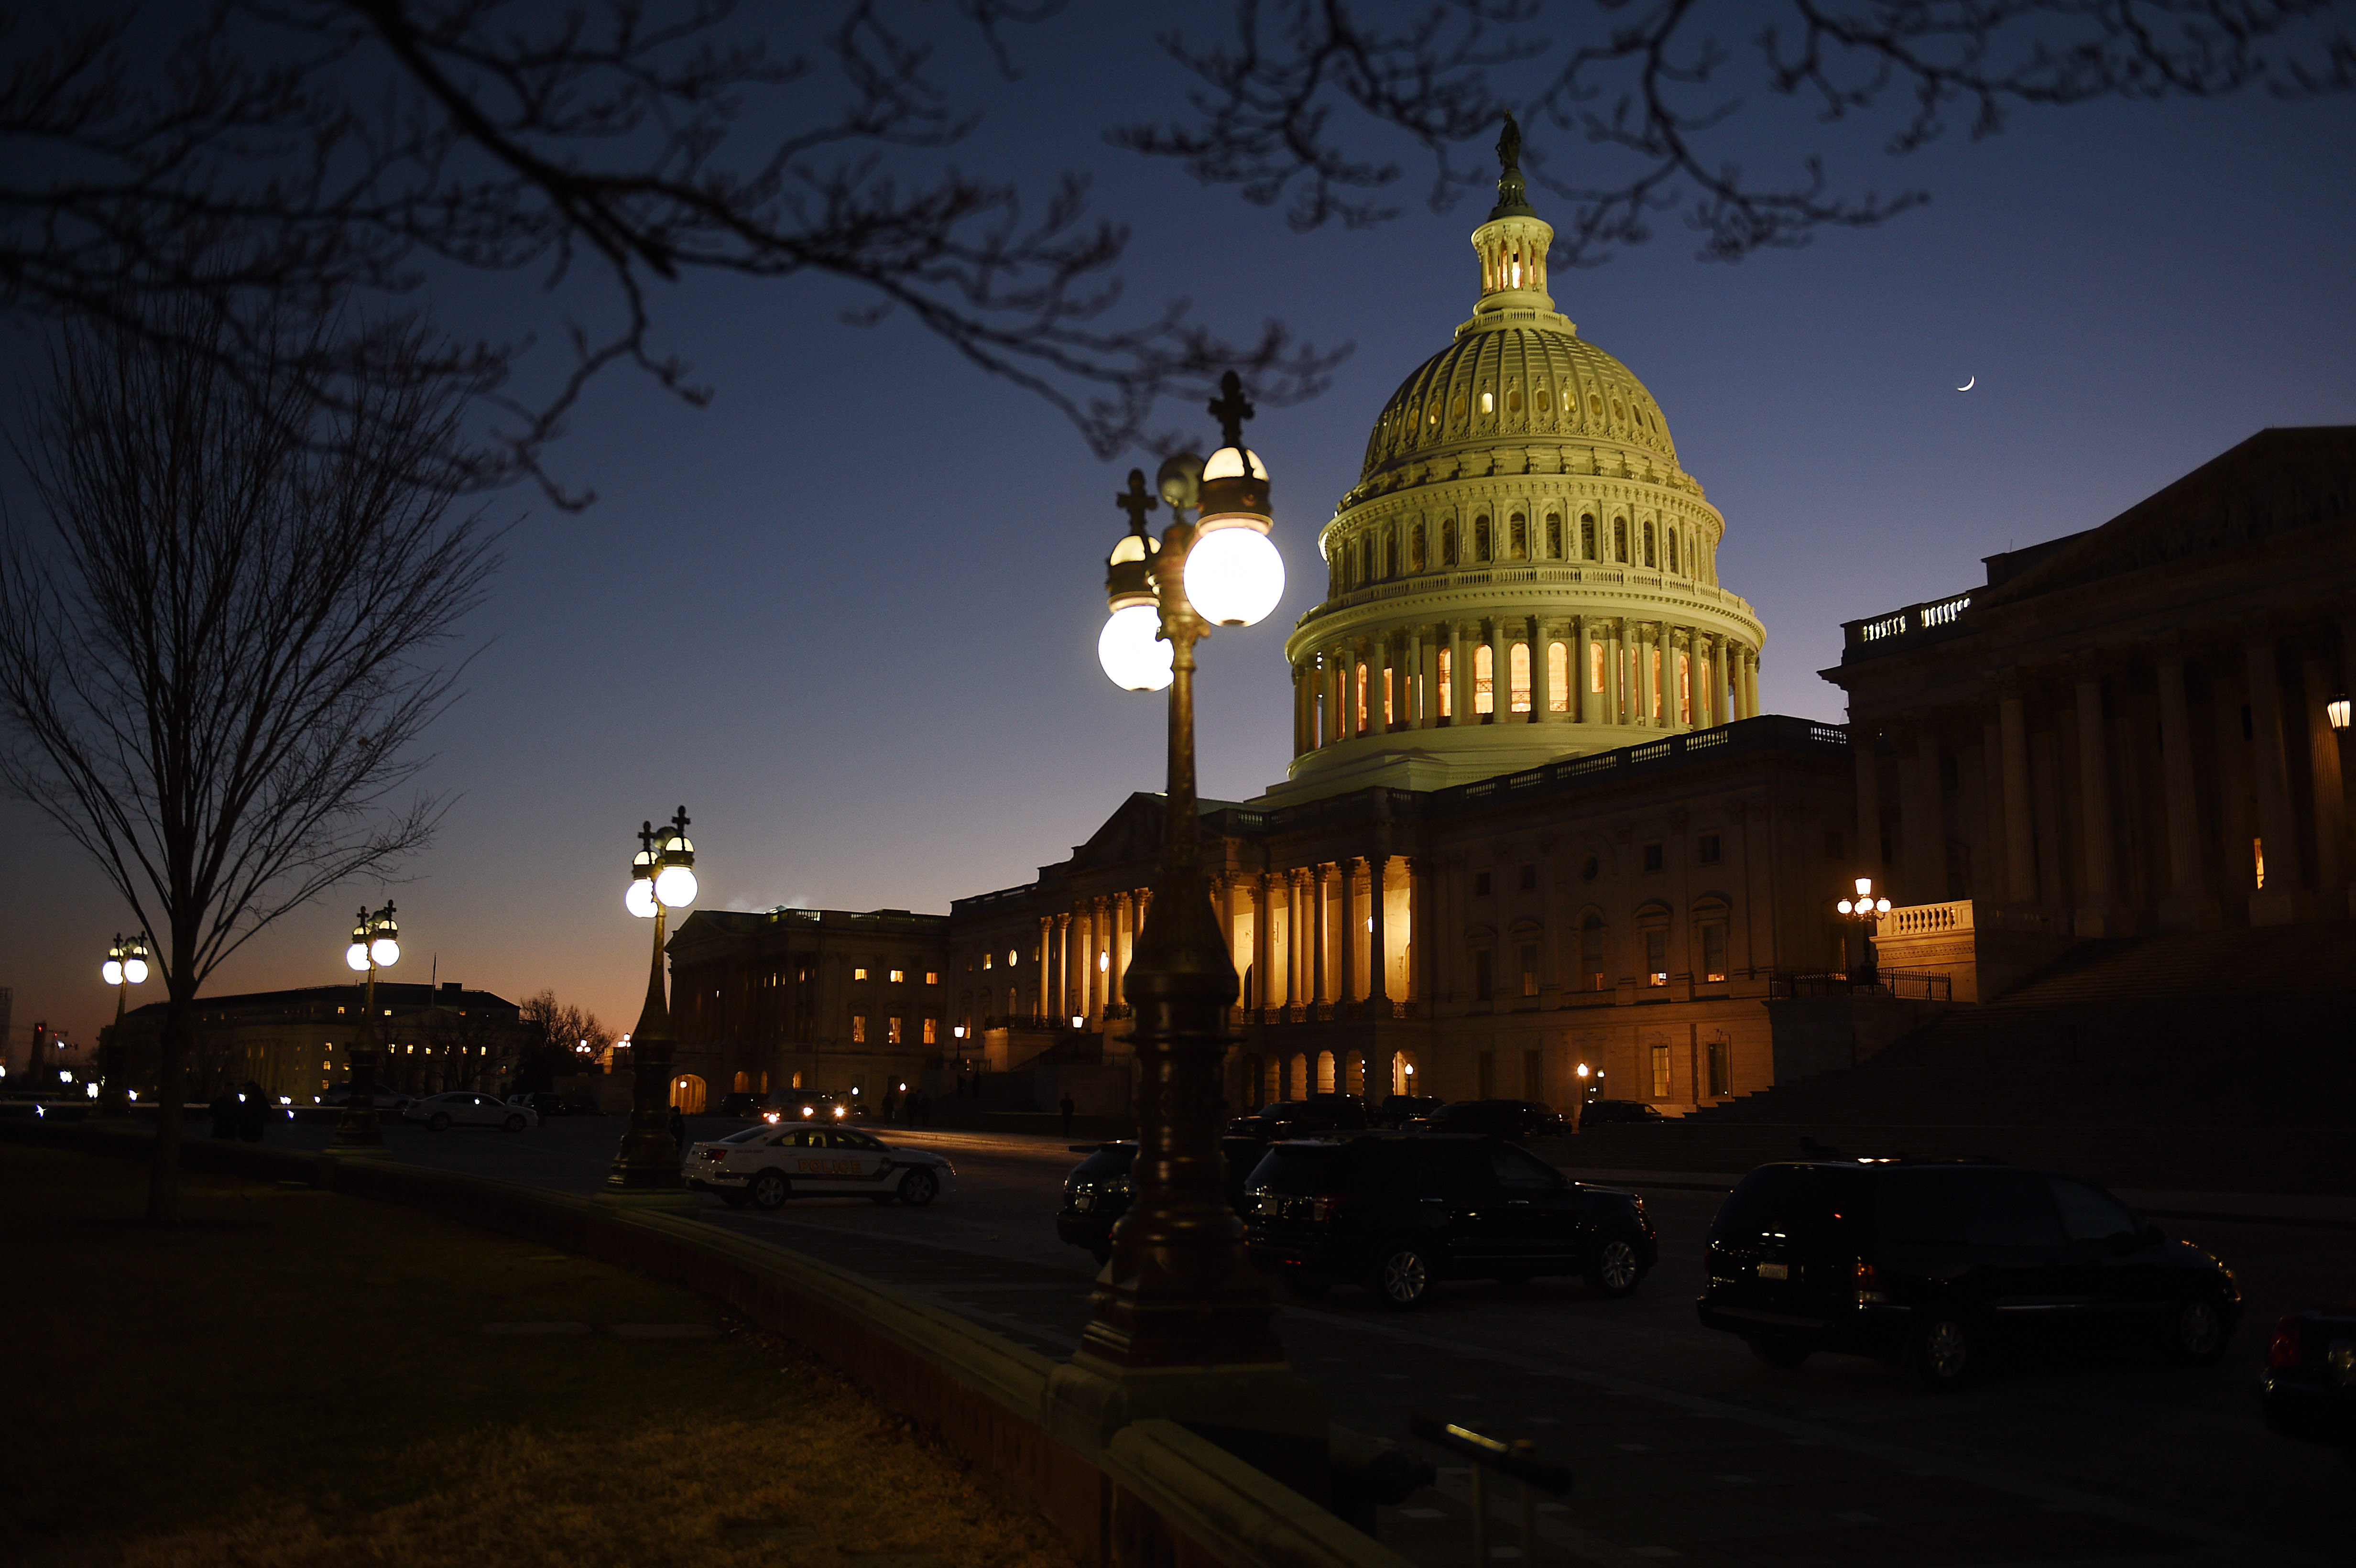 WASHINGTON, DC - JANUARY 19: Lawmakers on Capitol Hill in Washington, D.C., January 19, 2018, struggle to avoid an impending government shutdown. The federal government continued to move toward a shutdown Friday evening as an earlier attempt to reach a resolution during a meeting between President Trump and the Senates top Democrat failed.